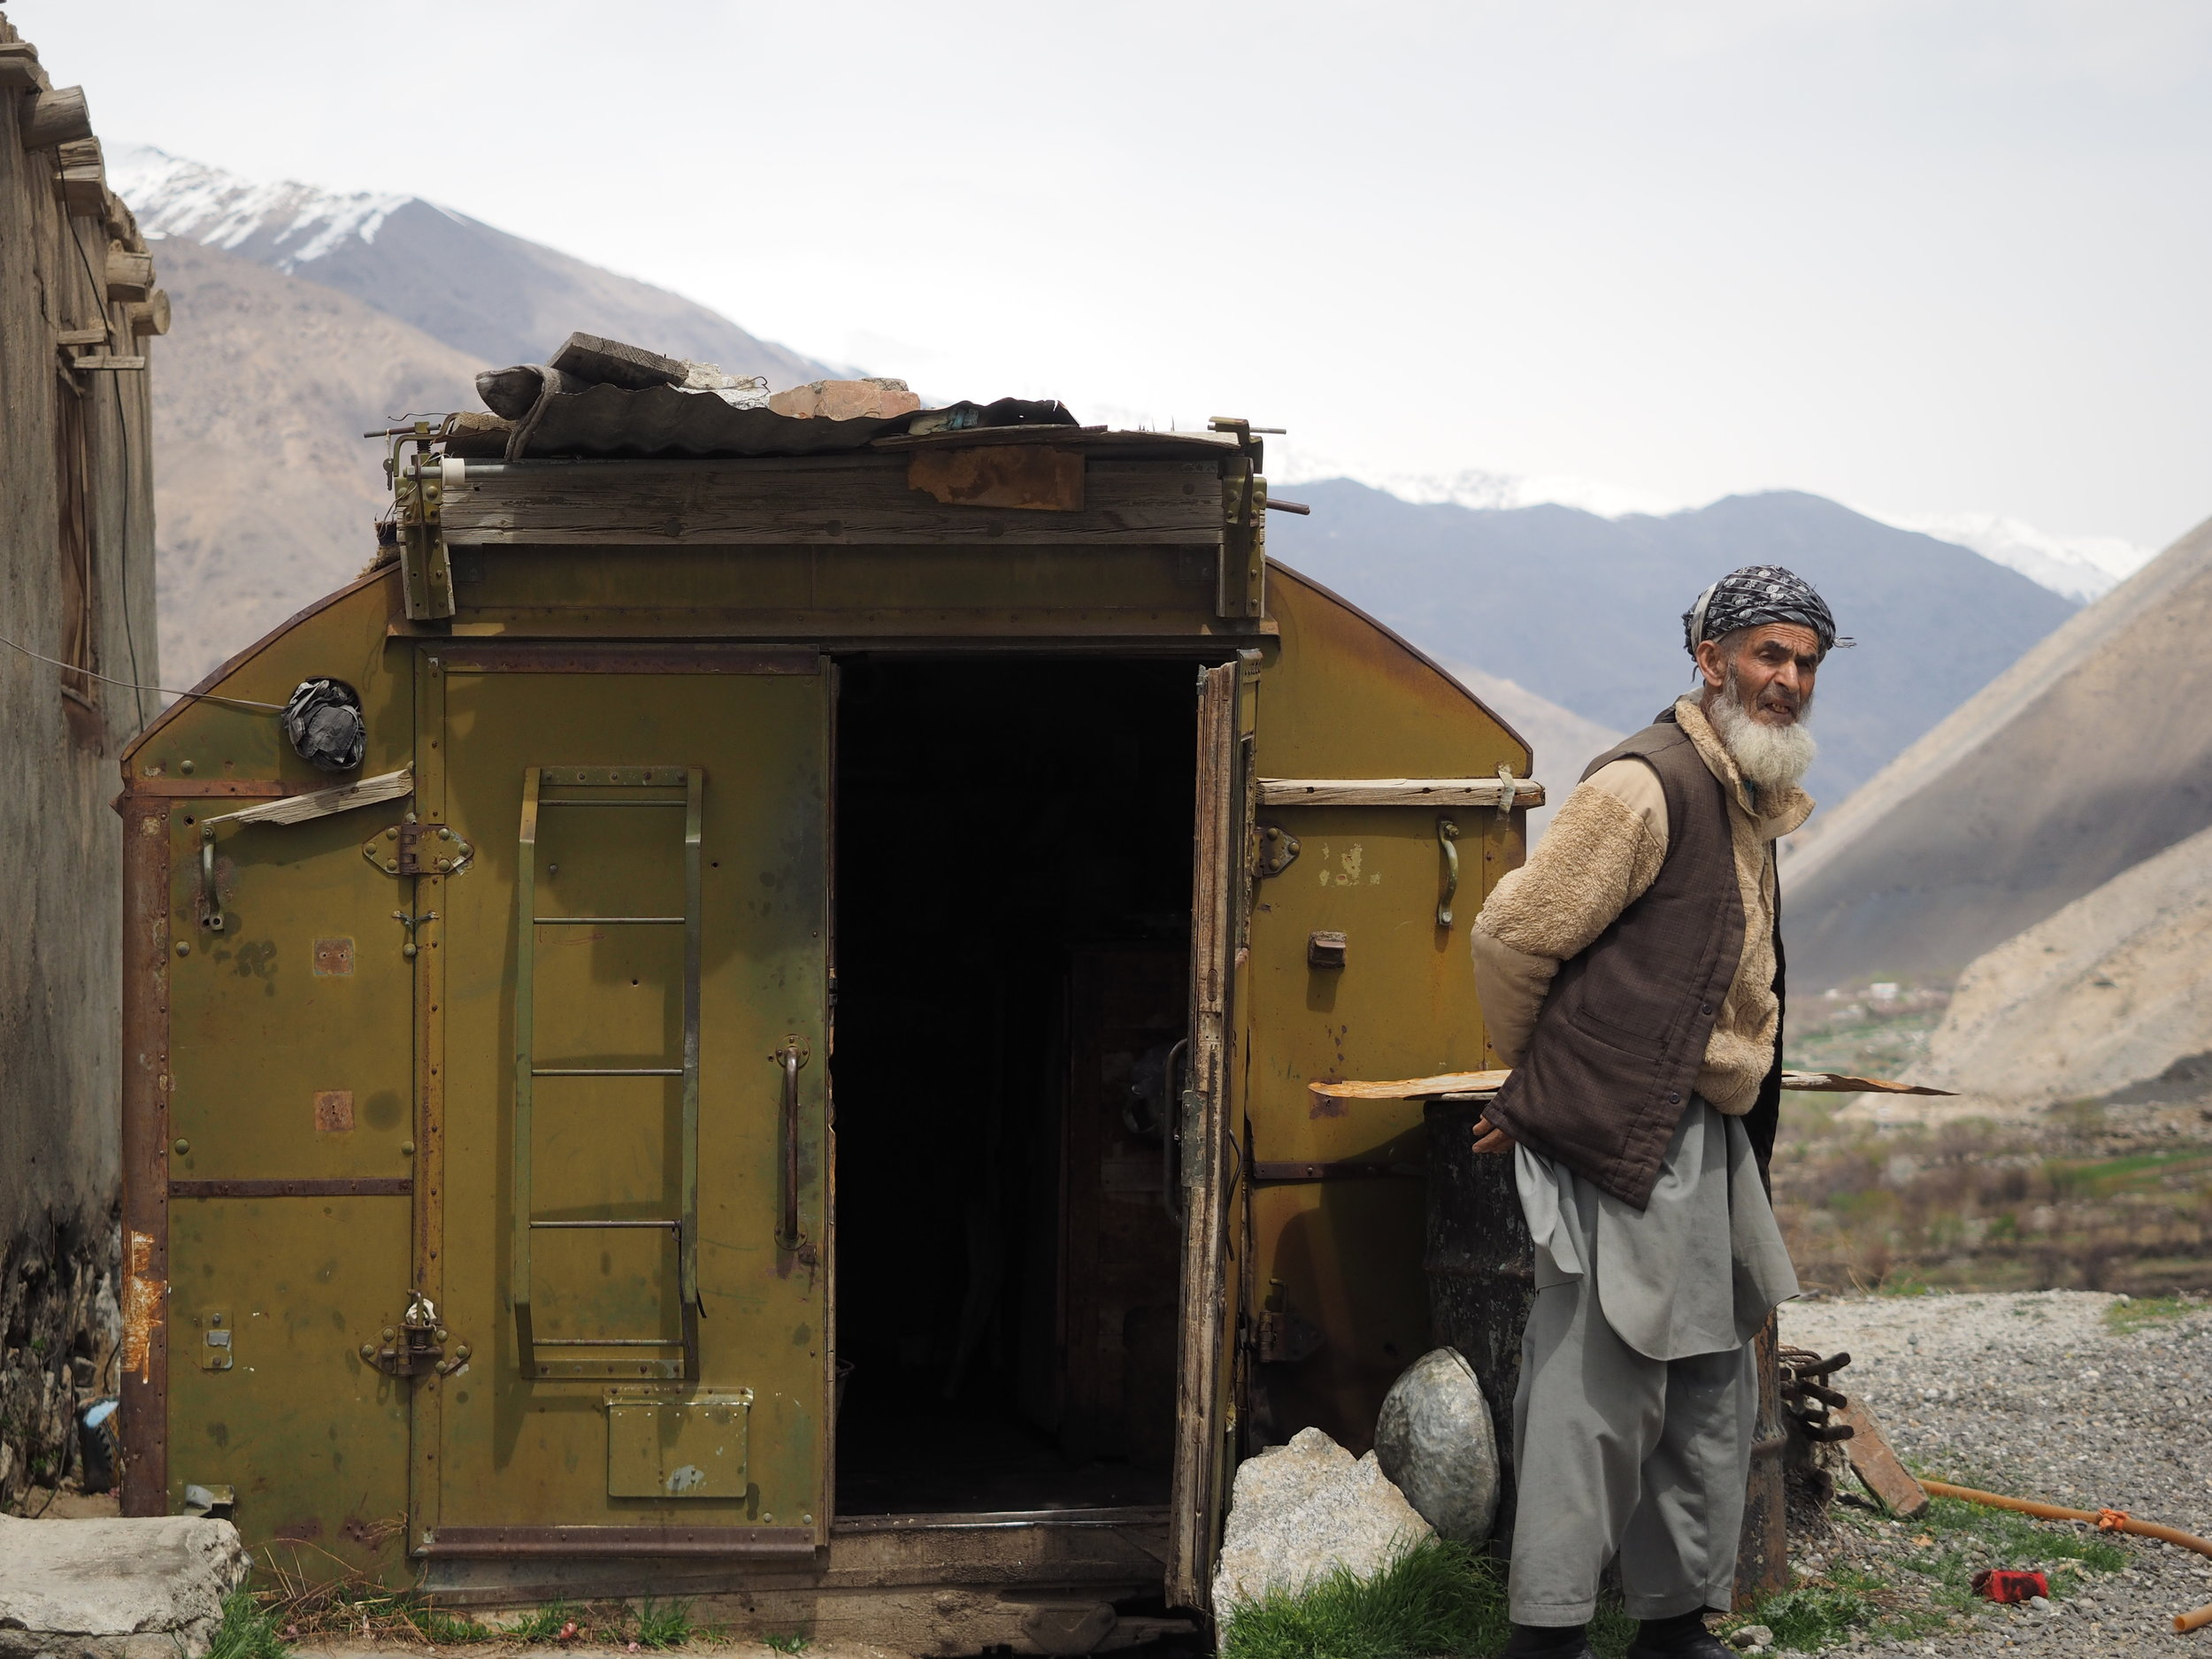 A caretaker at the mausoleum of Massoud in the Panjshir Valley leaving his accommodation.